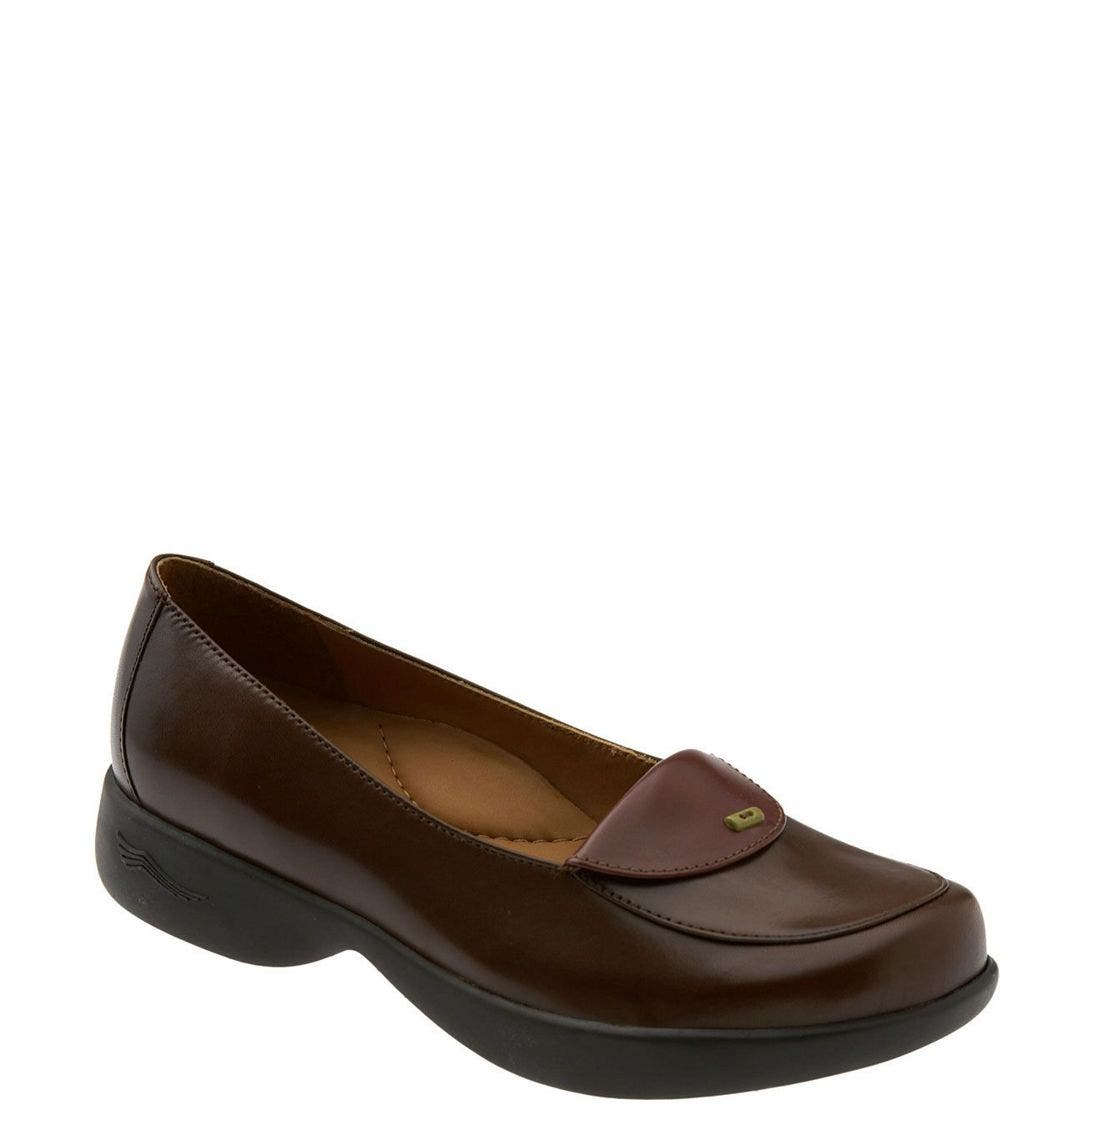 Main Image - Dansko 'Desiree' Loafer